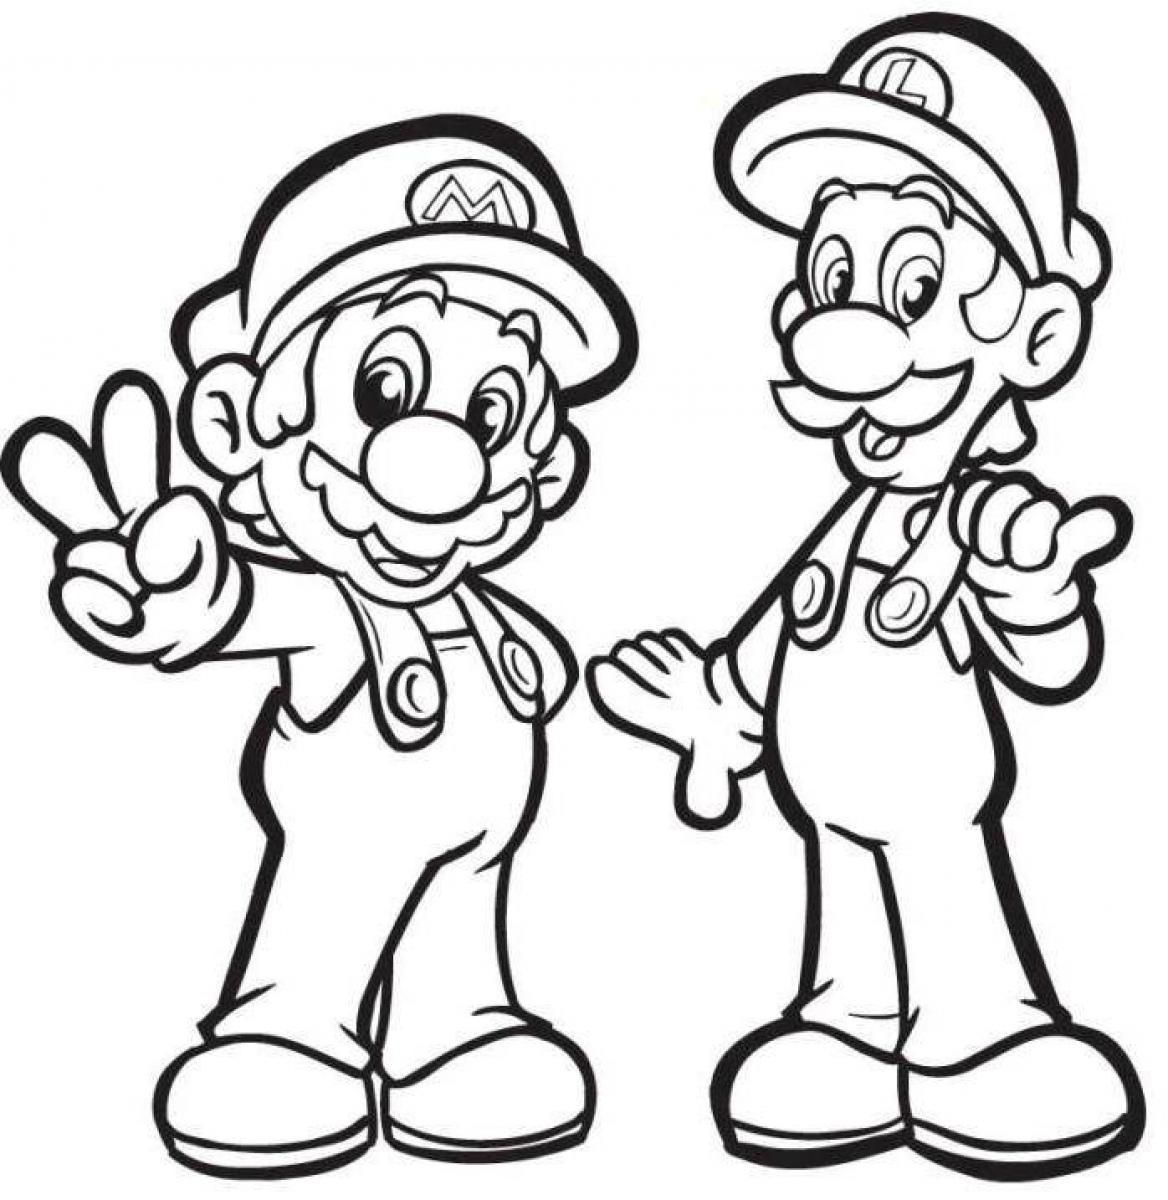 Luigi Coloring Pages, Printable Luigi Coloring Pages, Free